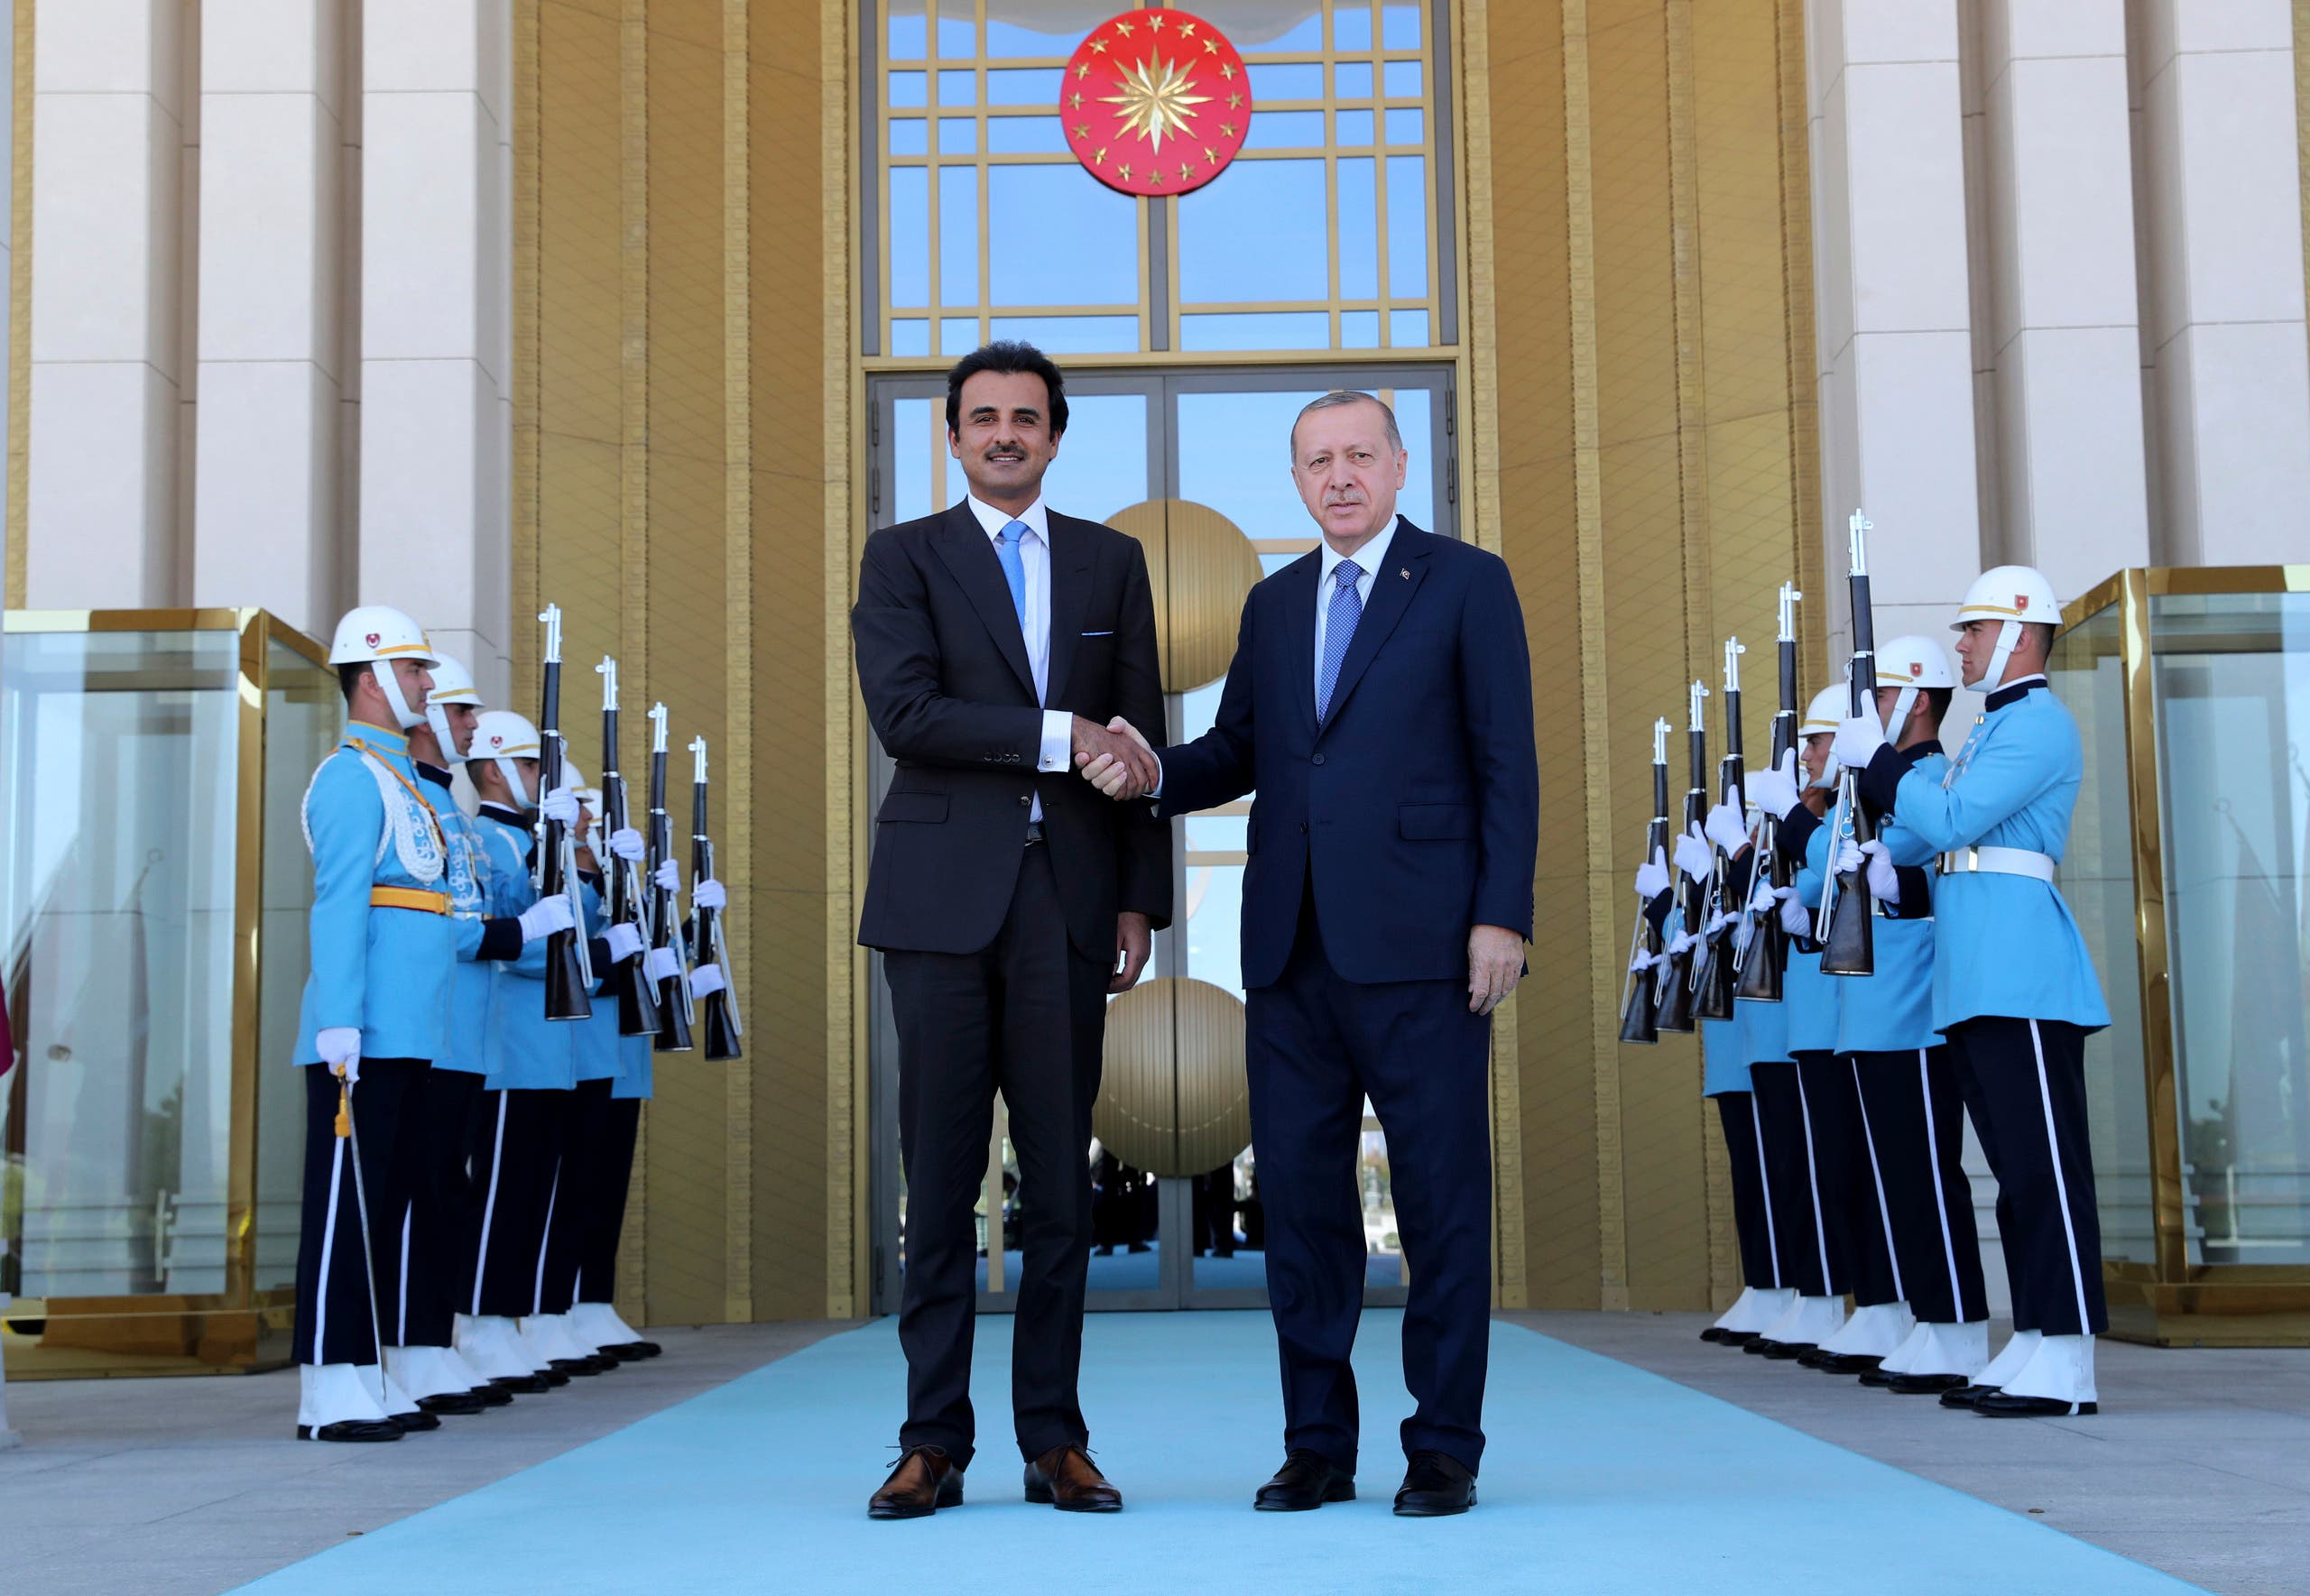 Turkey's President Recep Tayyip Erdogan, right, and Qatar's Emir Sheikh Tamim bin Hamad Al Thani shake hands before their talks in Ankara, Turkey, Wednesday, Aug. 15, 2018. (AP)